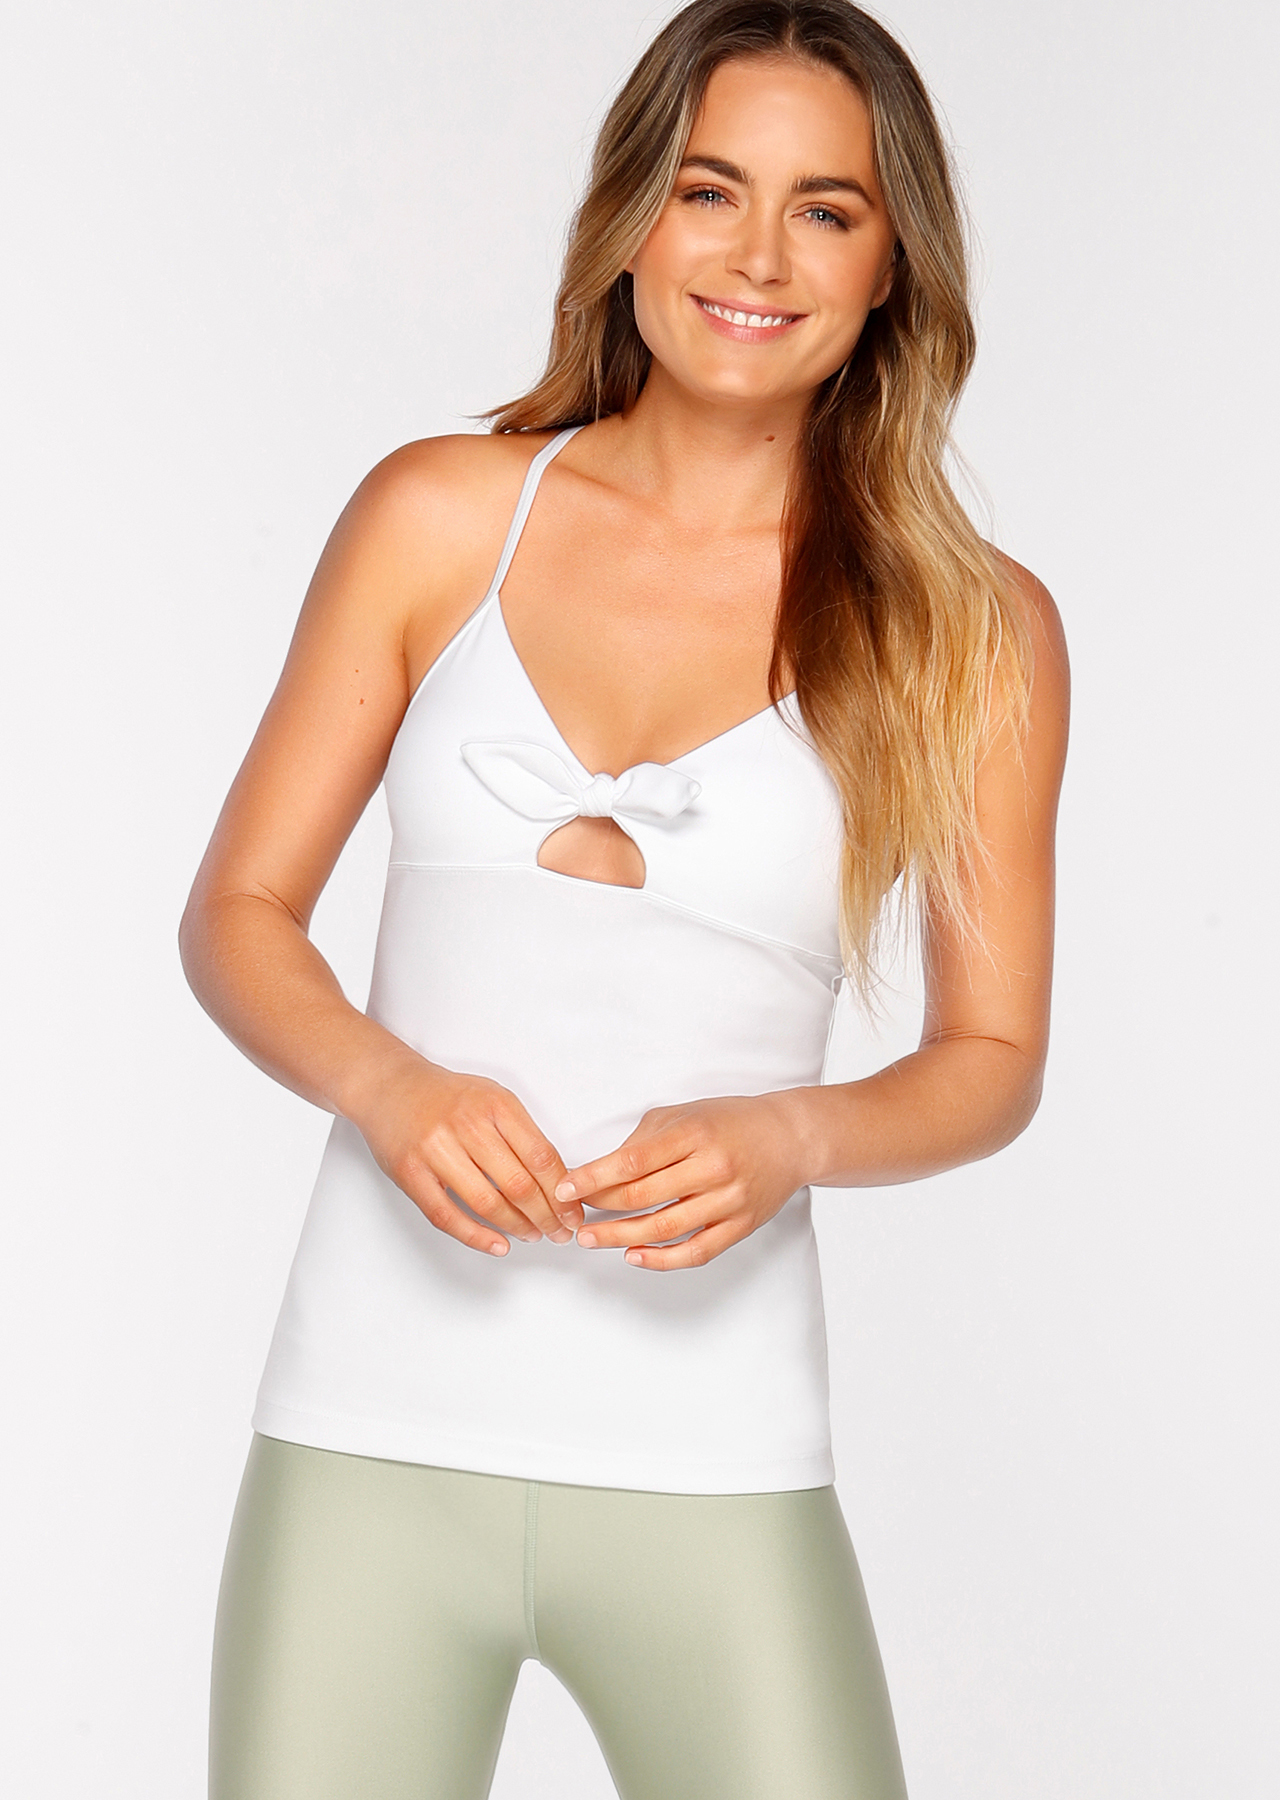 energy excel tank white 111813 w 1 - Sports & Fitness